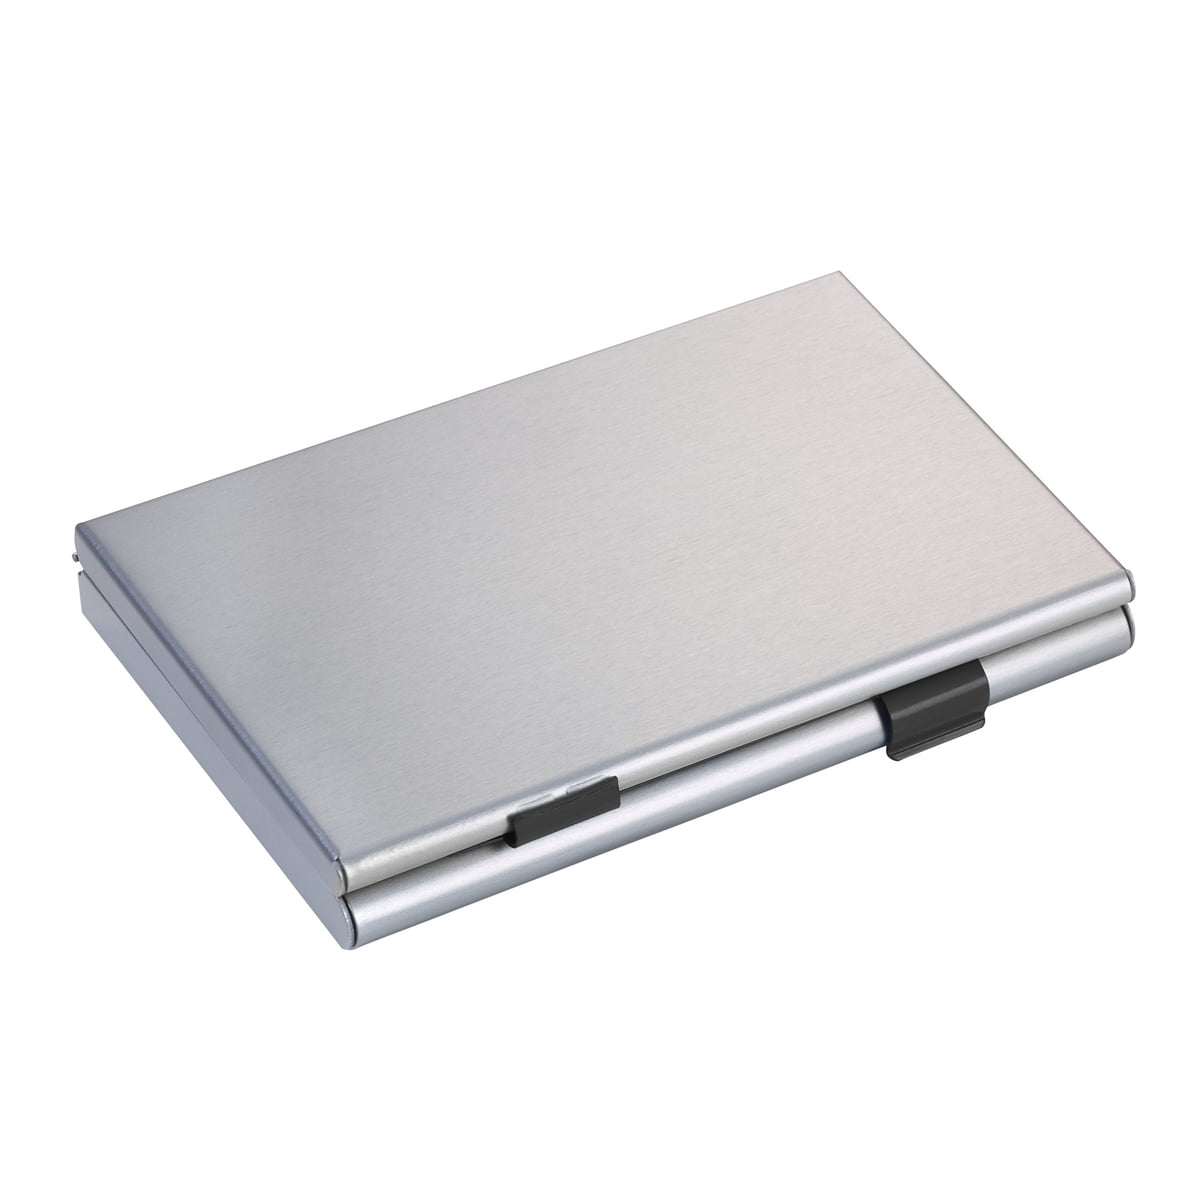 Business card case by troika in the shop troika business card holder titanium colour black colourmoves